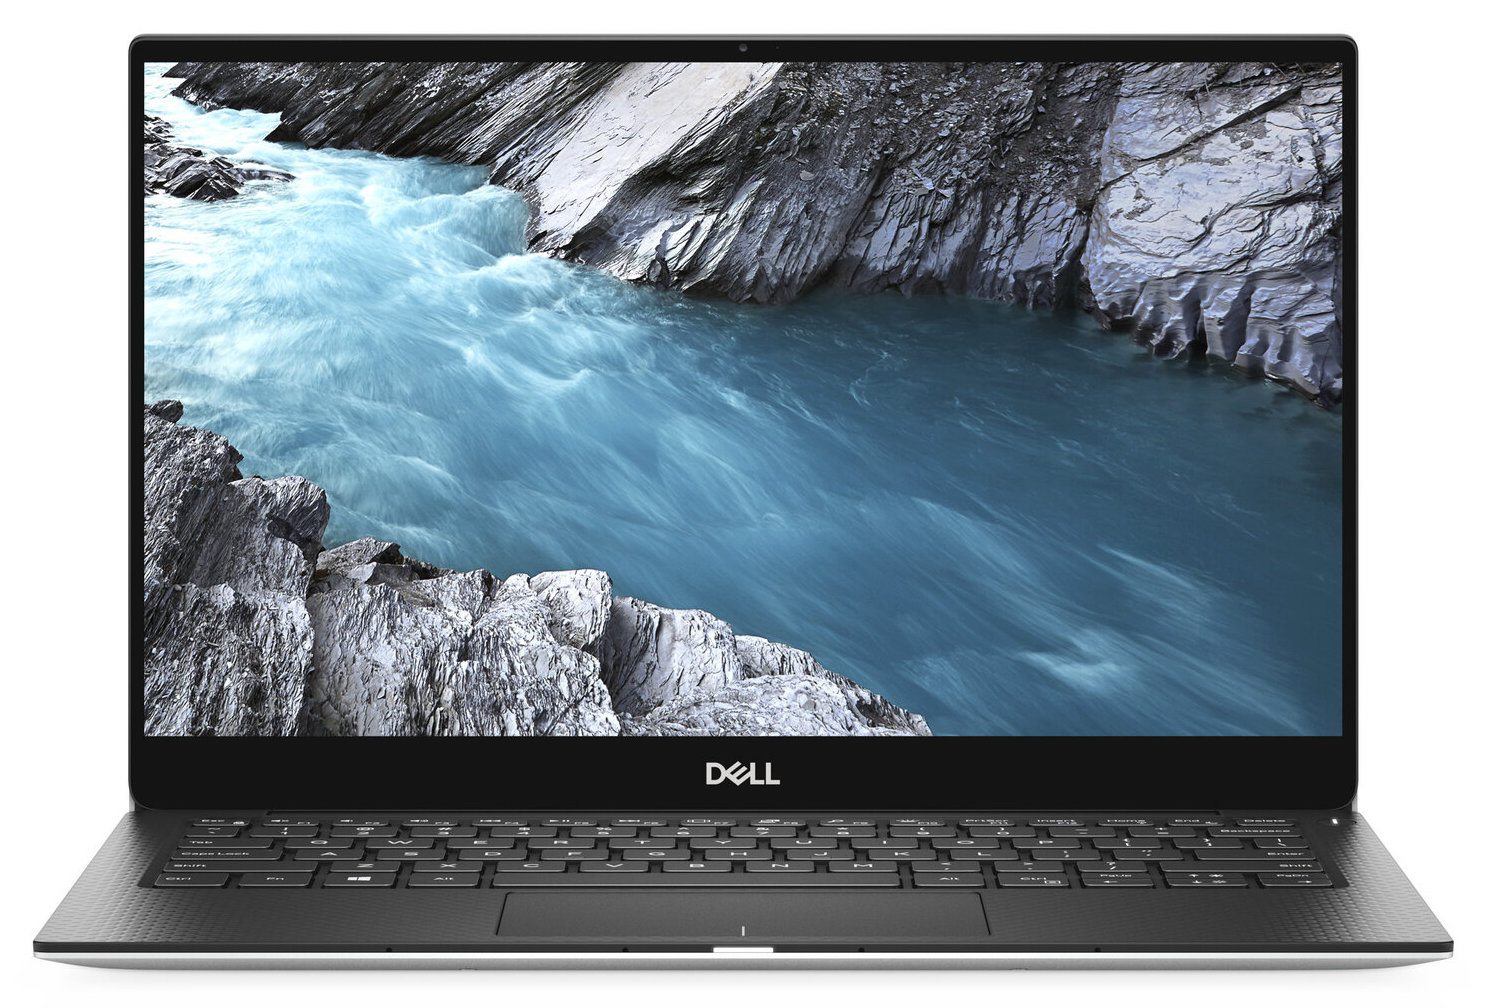 Dell XPS 13 9380 review – high-level business notebook